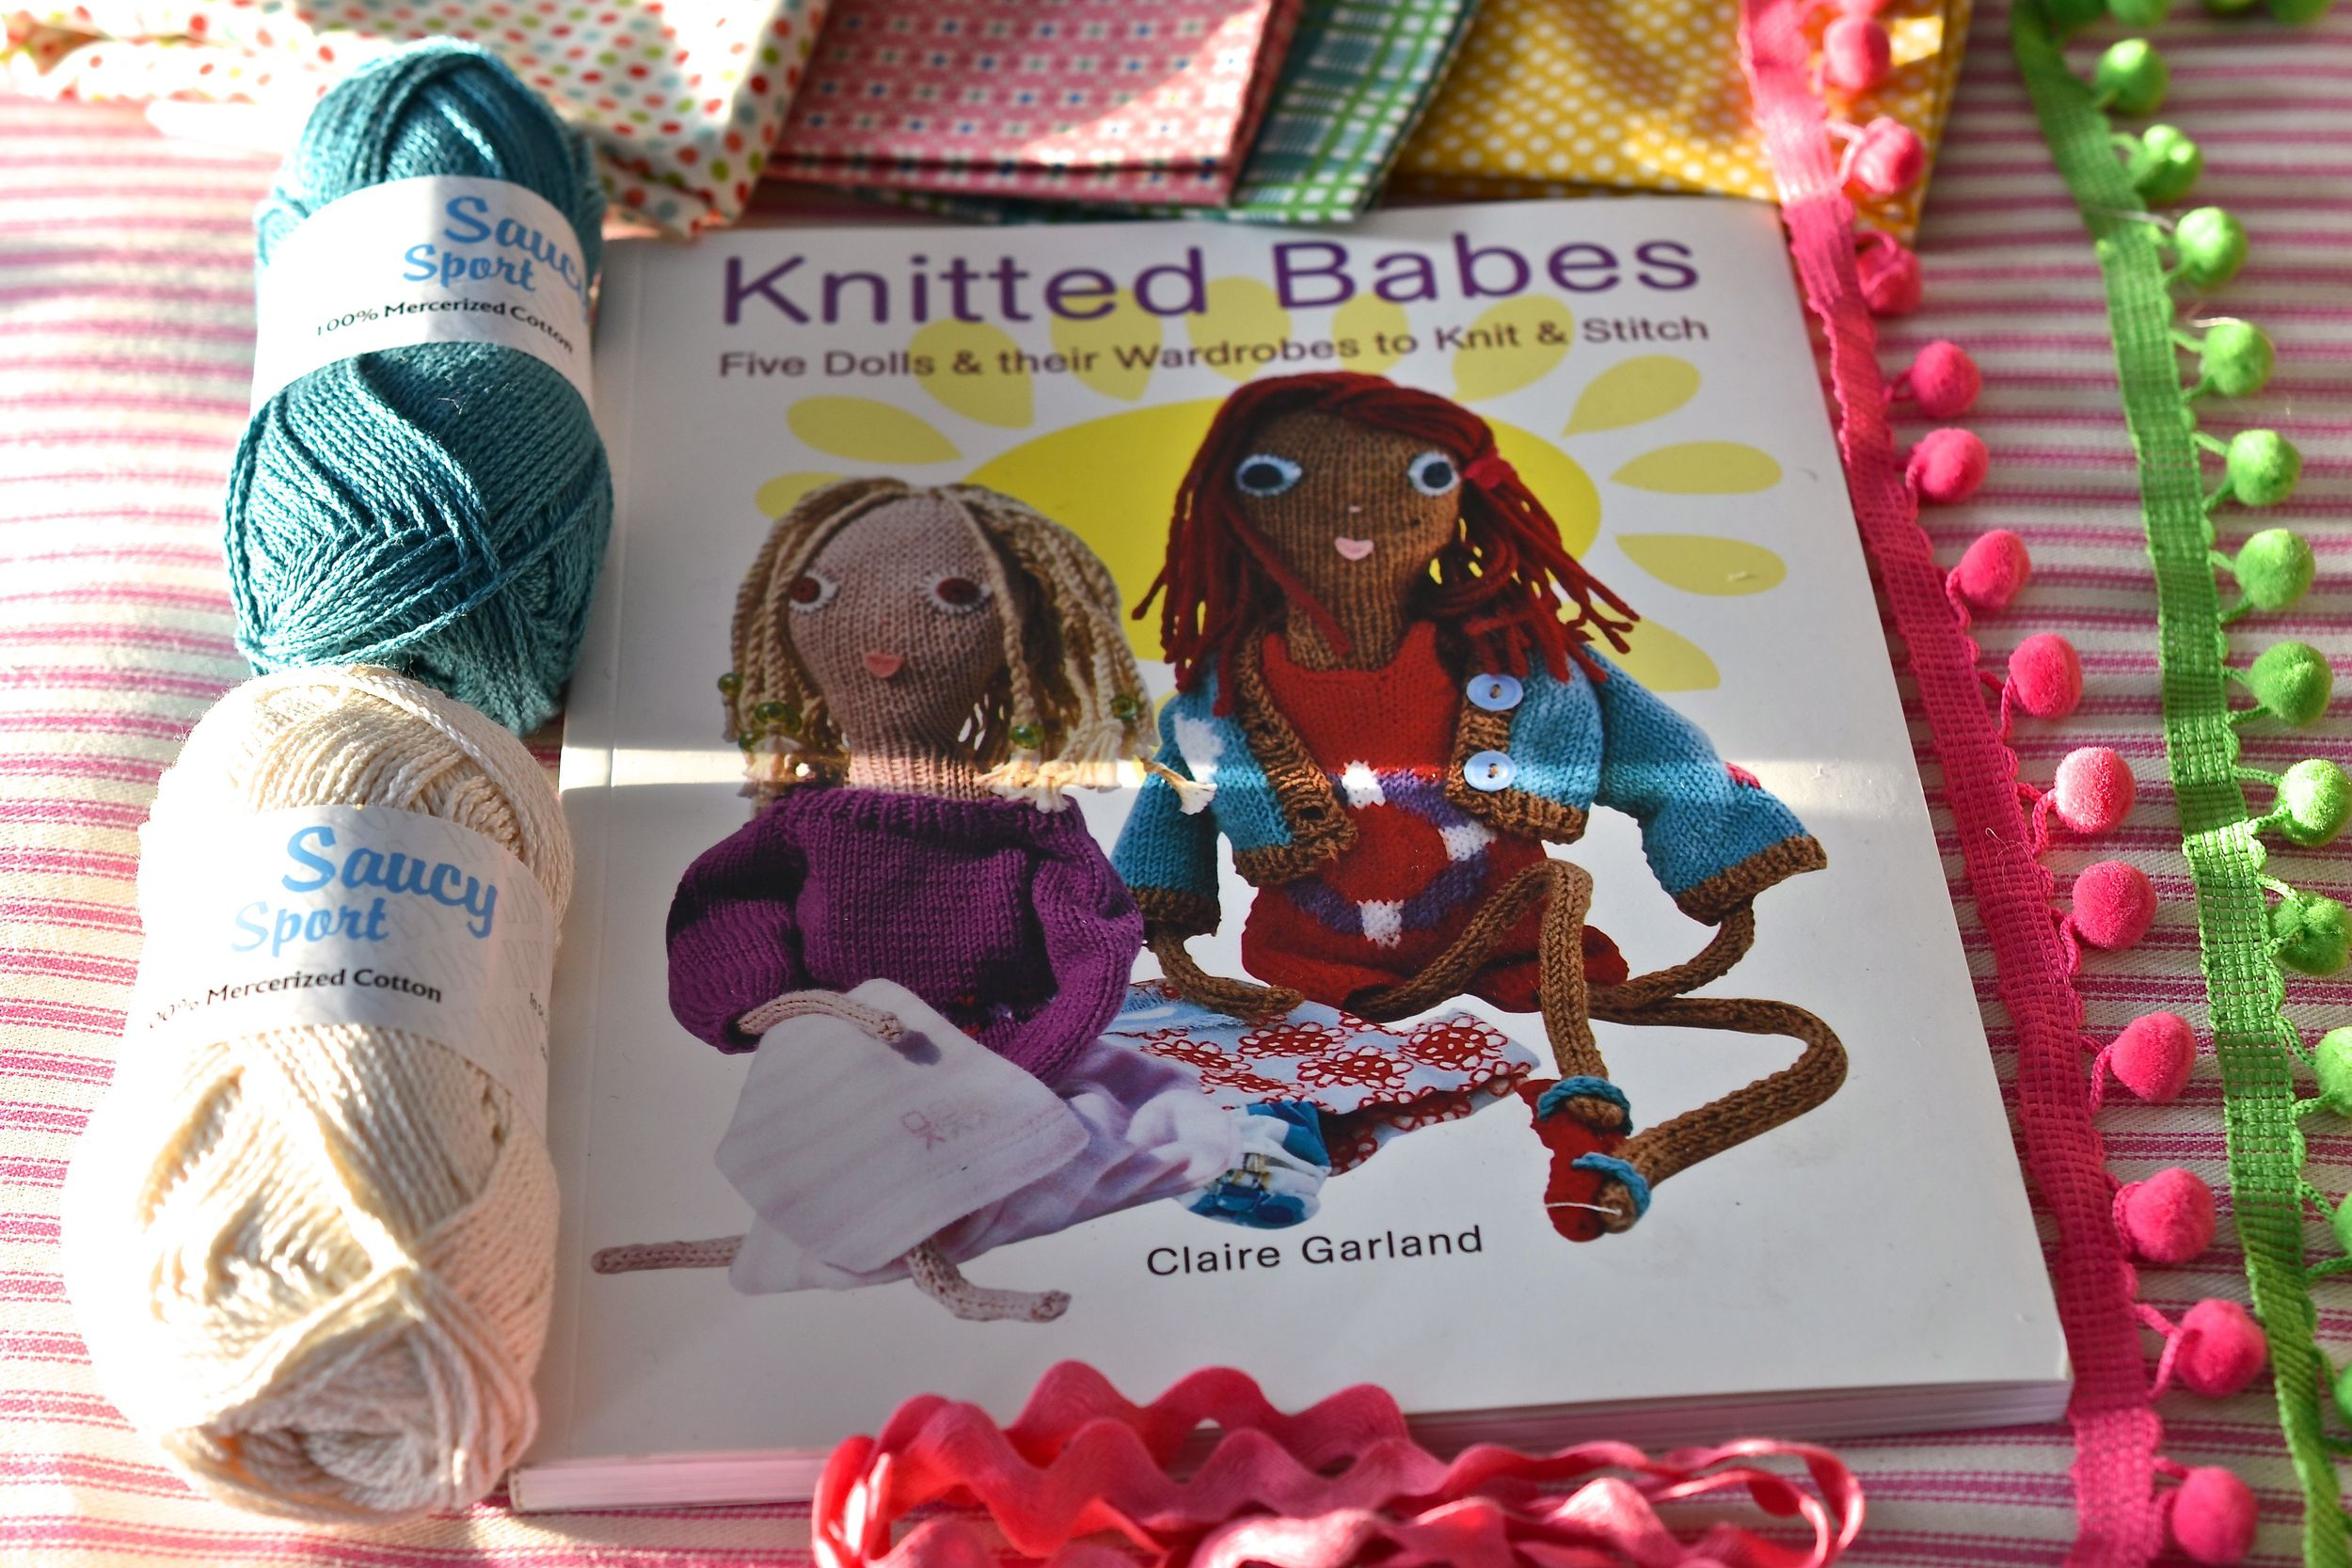 The book and materials for the babes clothes.